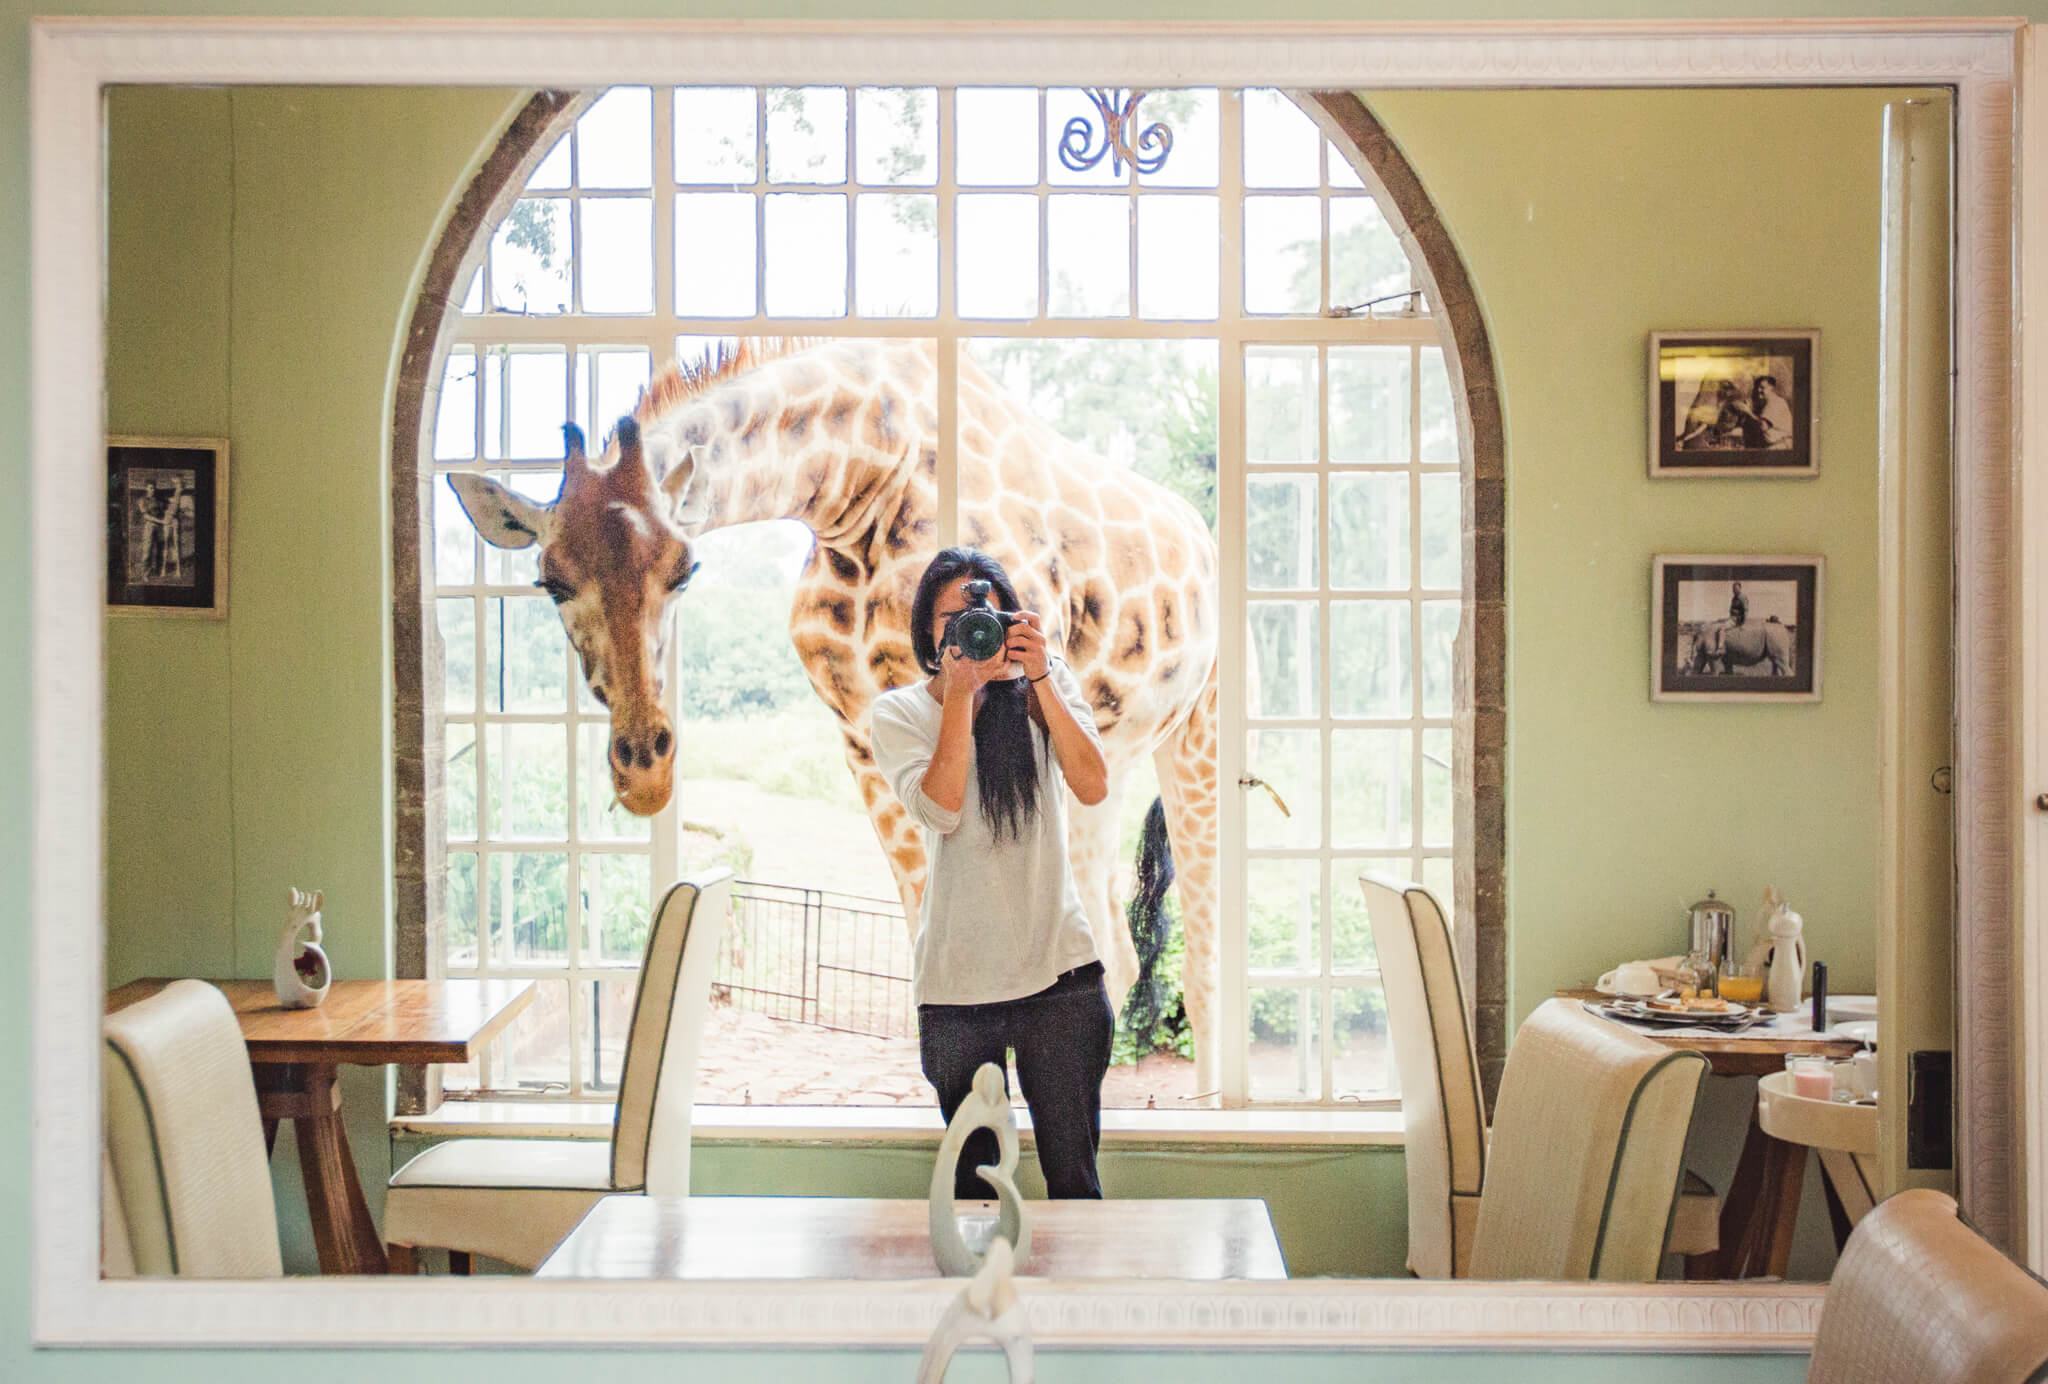 Person with camera and a giraffe through the window